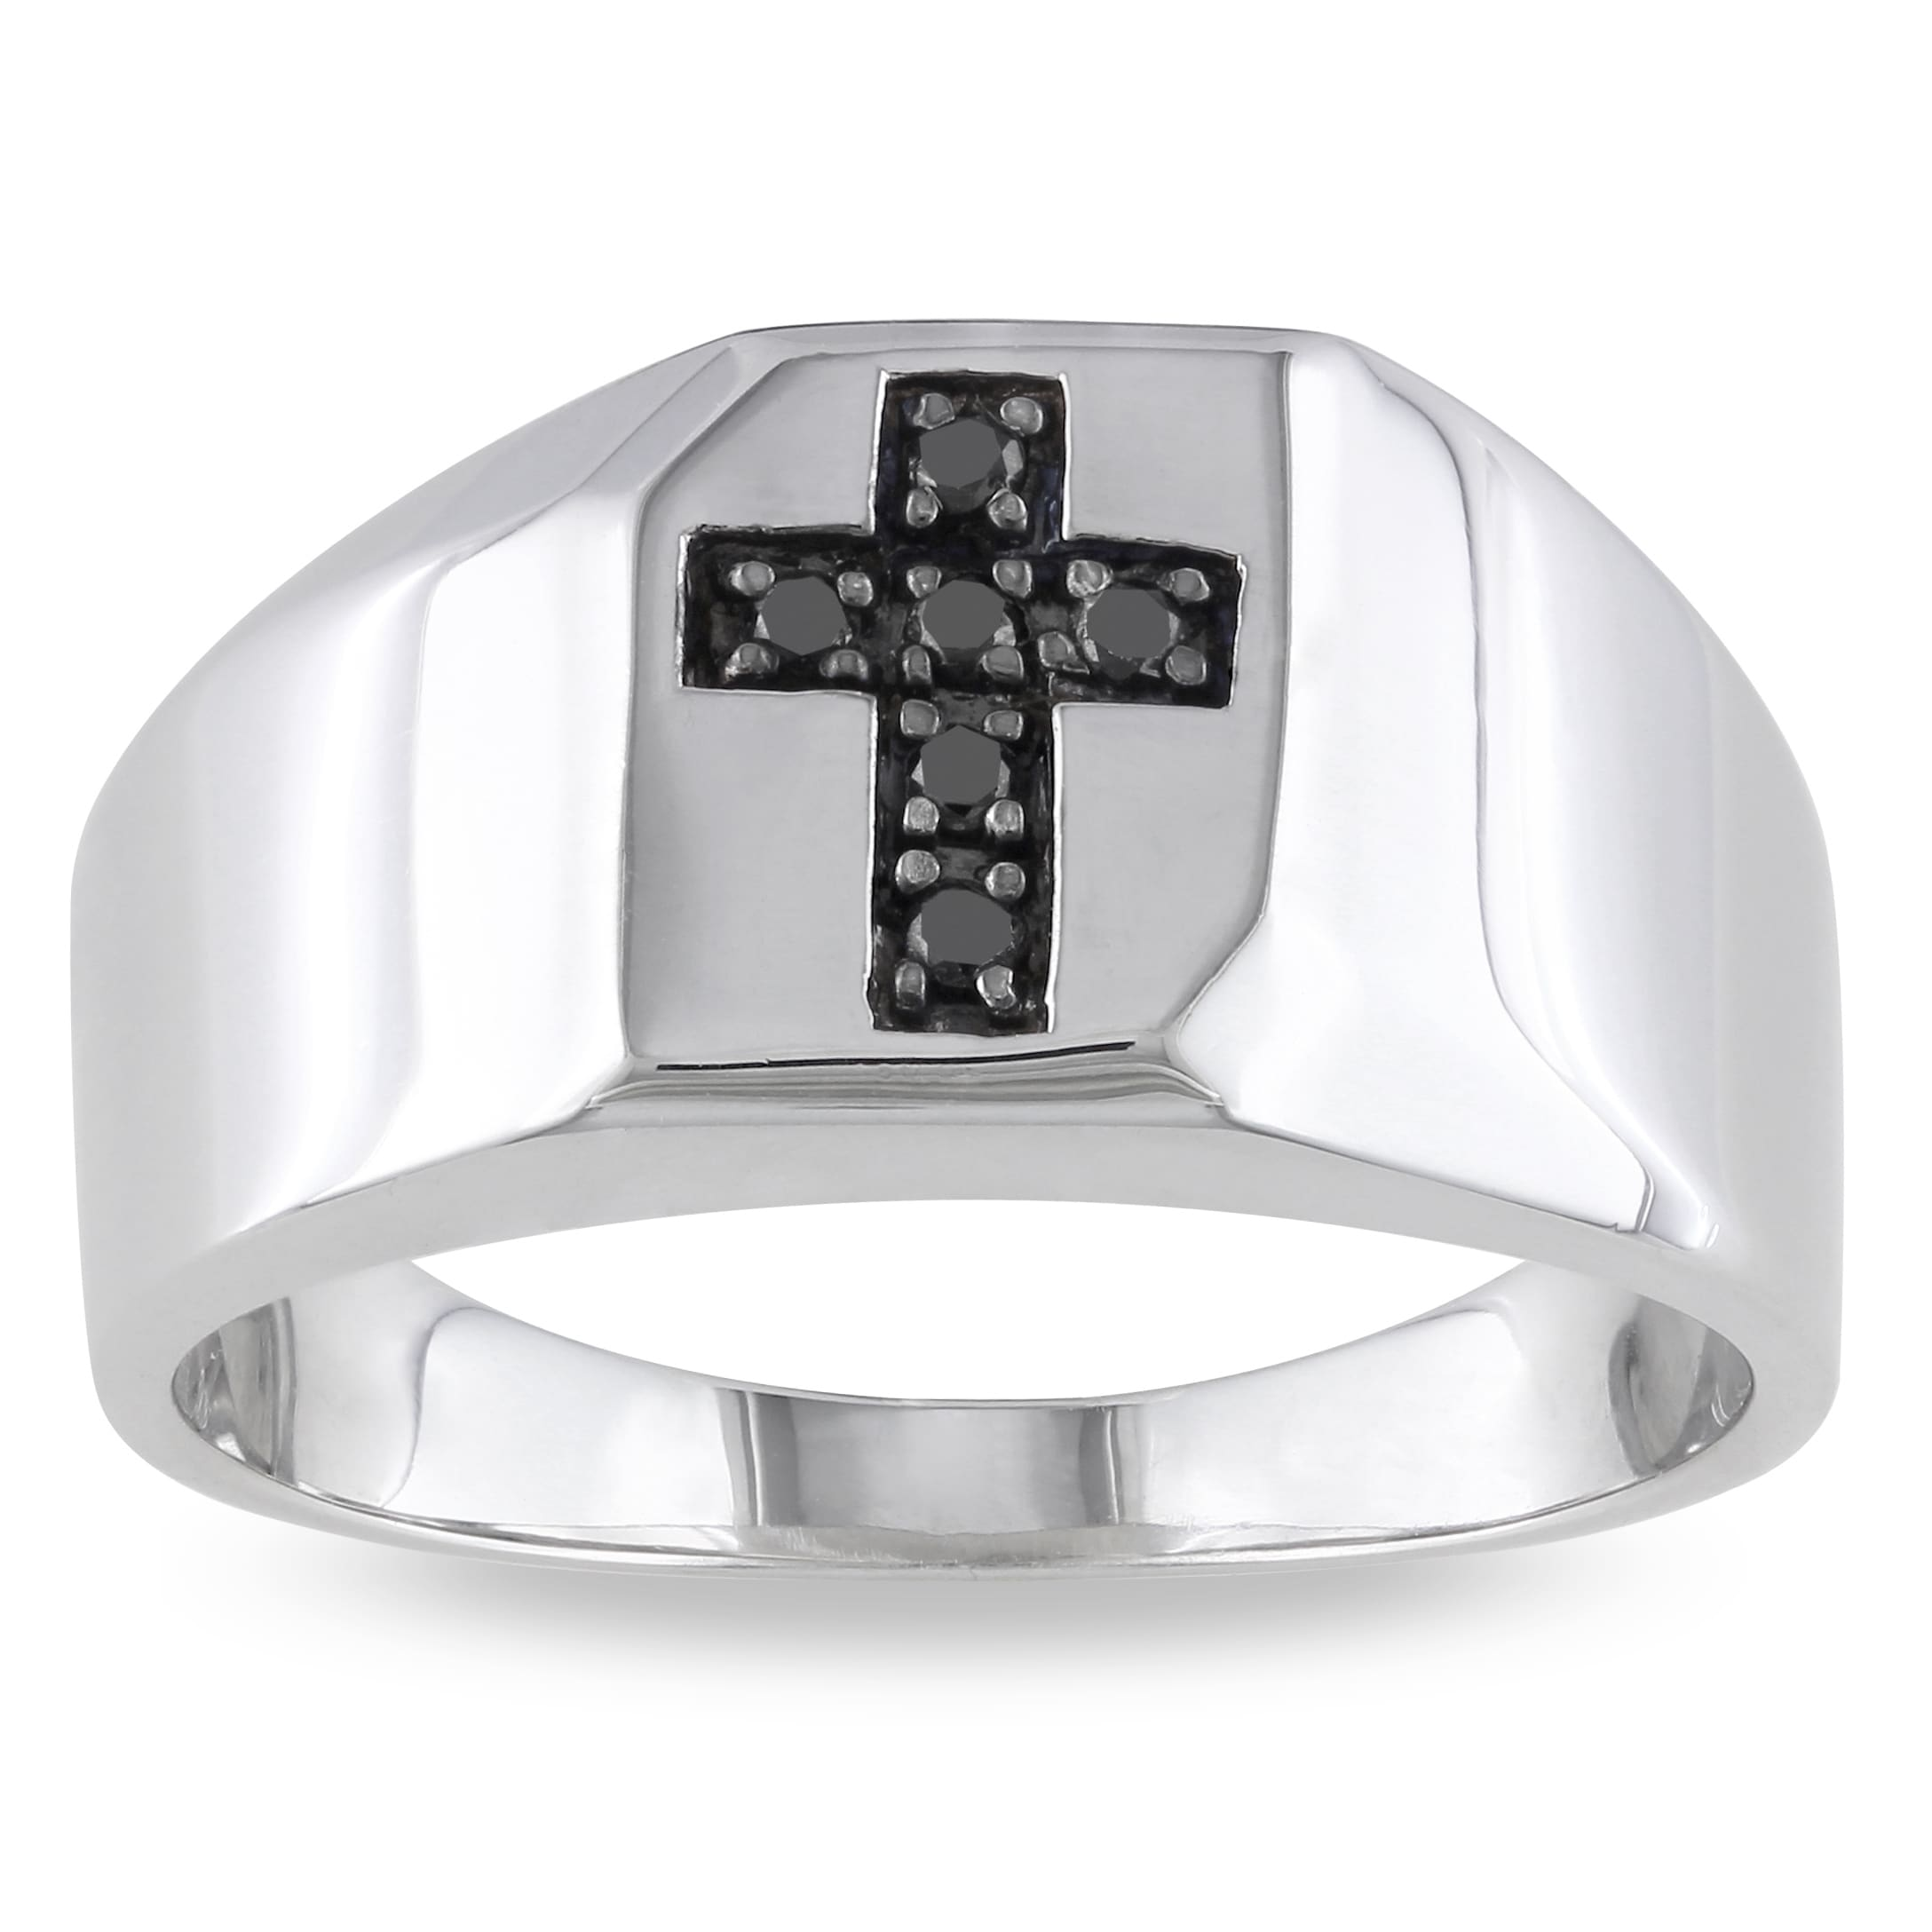 silver bands tw sterling nice keepsake wedding cross rings corners download forever idea carat diamond bride bridal walmart amazing